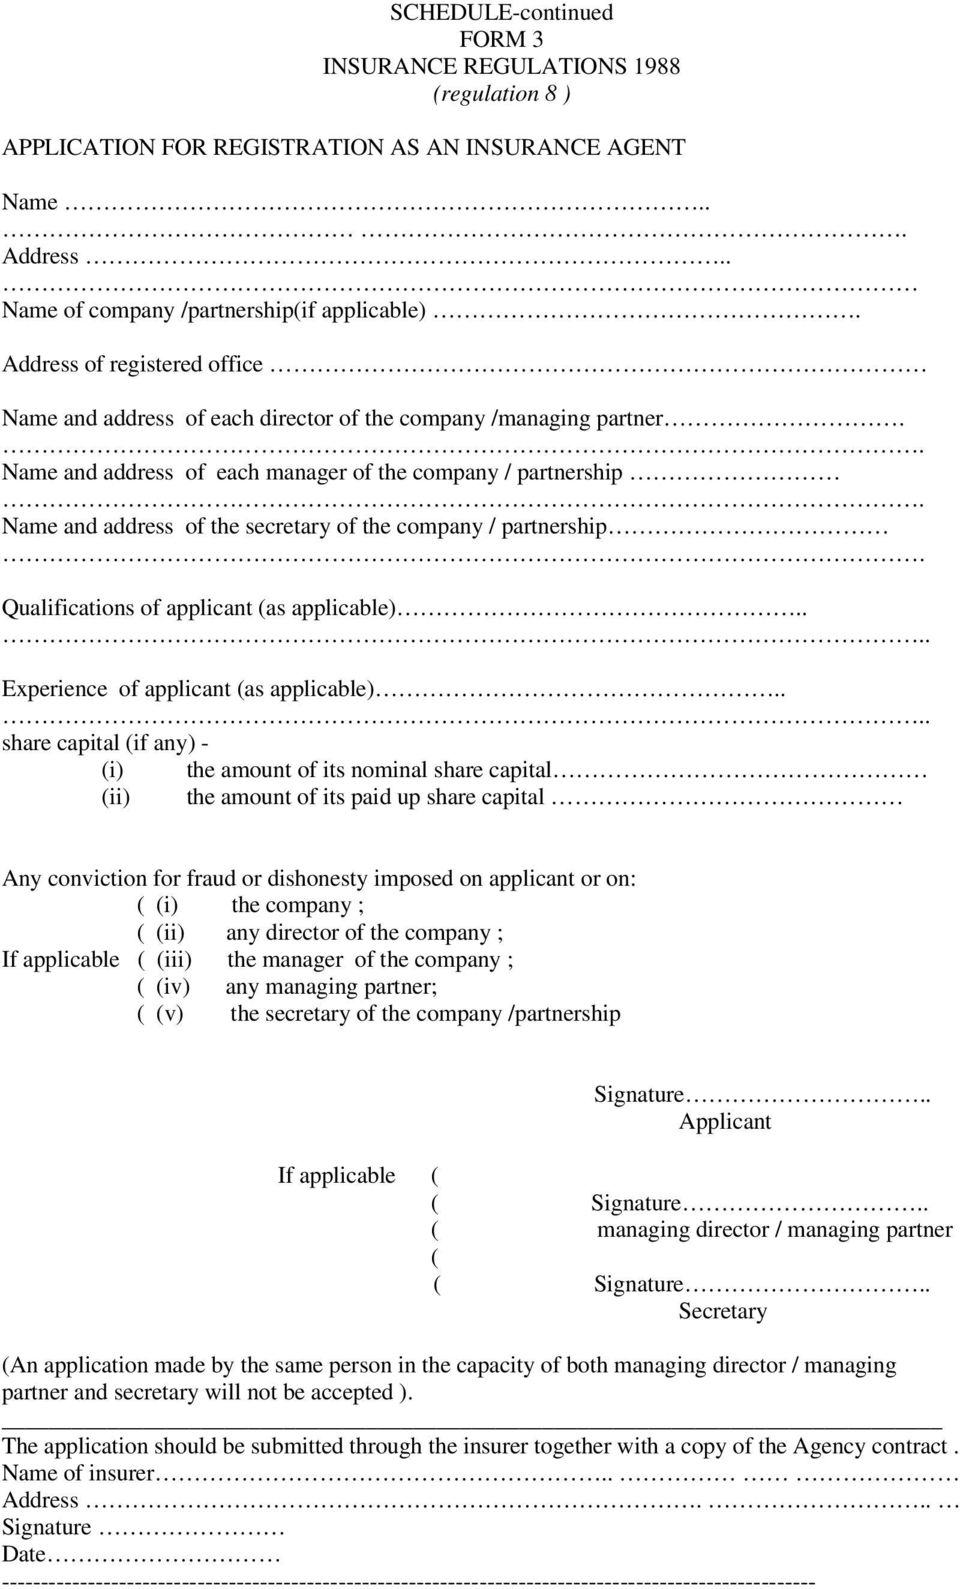 Name and address of each manager of the company / partnership Name and address of the secretary of the company / partnership Qualifications of applicant (as applicable) Experience of applicant (as